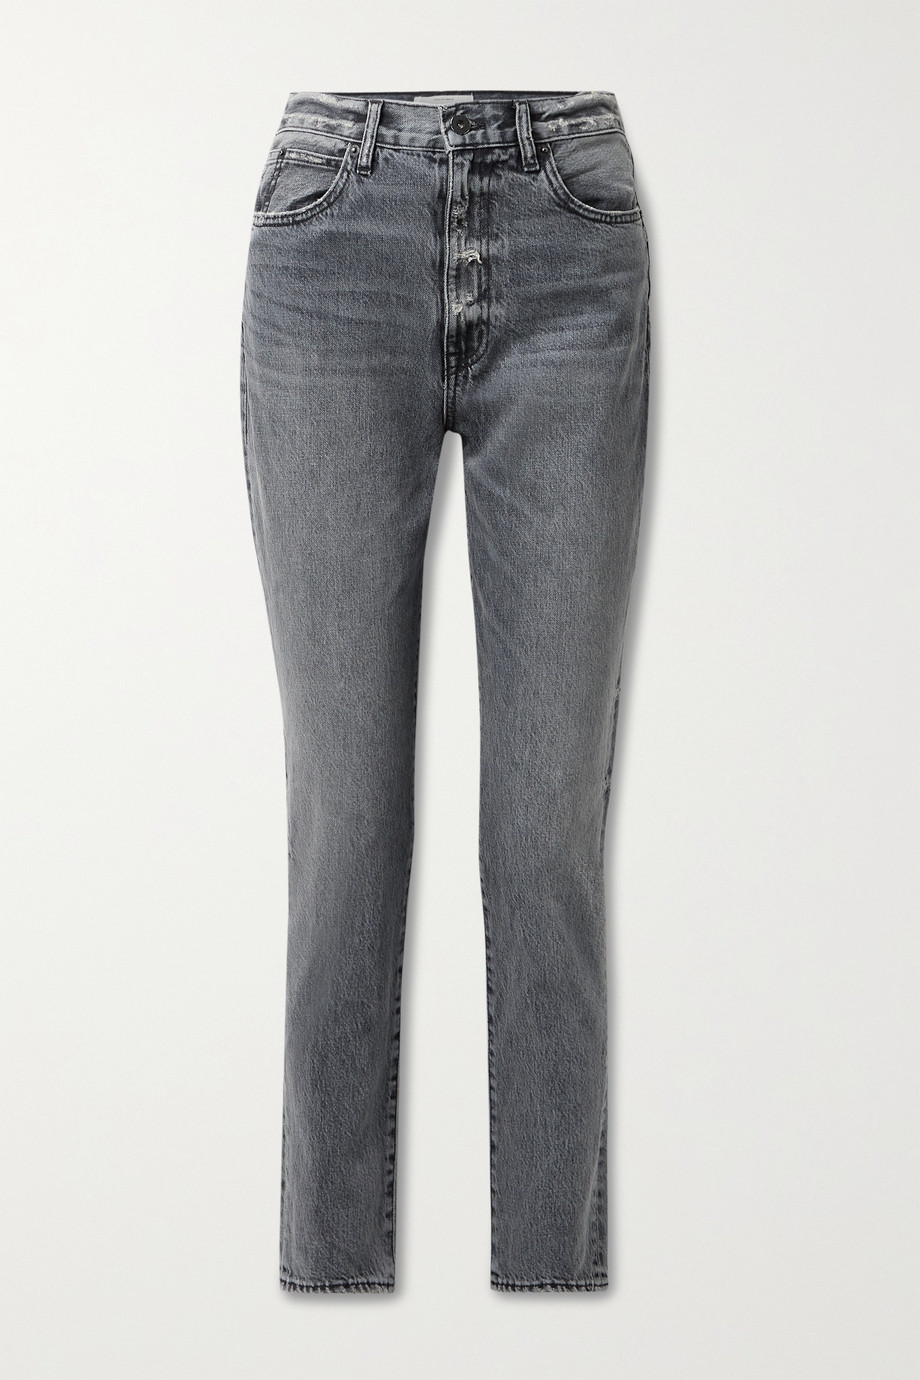 SLVRLAKE Beatnik hoch sitzende Jeans mit schmalem Bein in Distressed-Optik